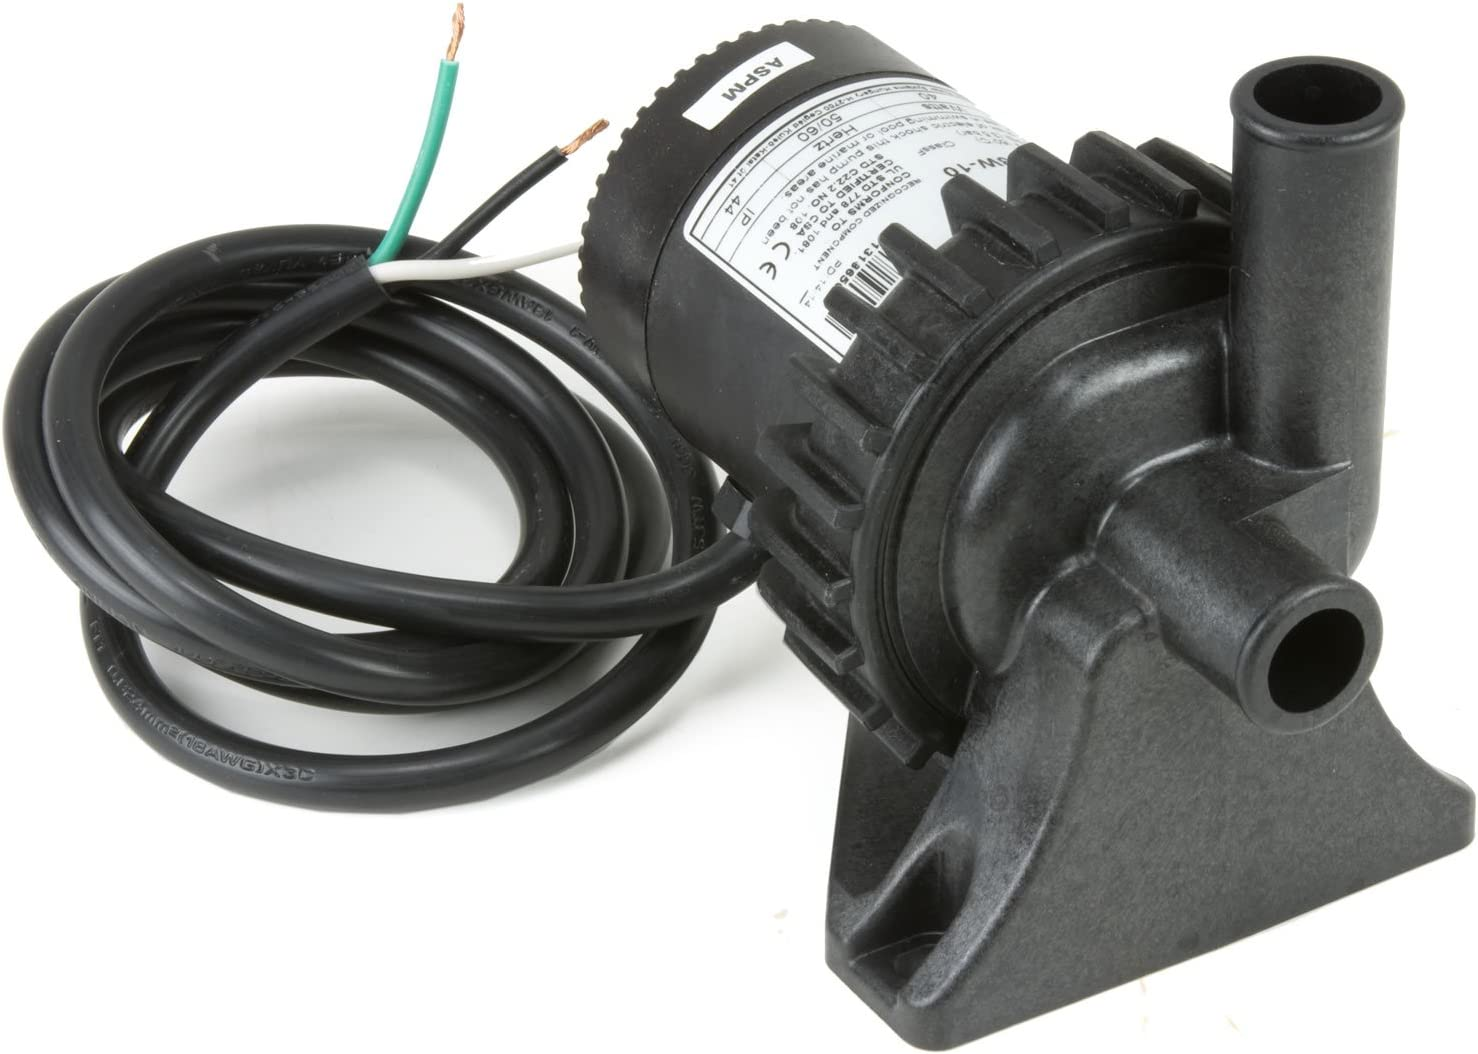 Laing 74427 3 4 Barbed In Out Hose Connections And 48 Cord